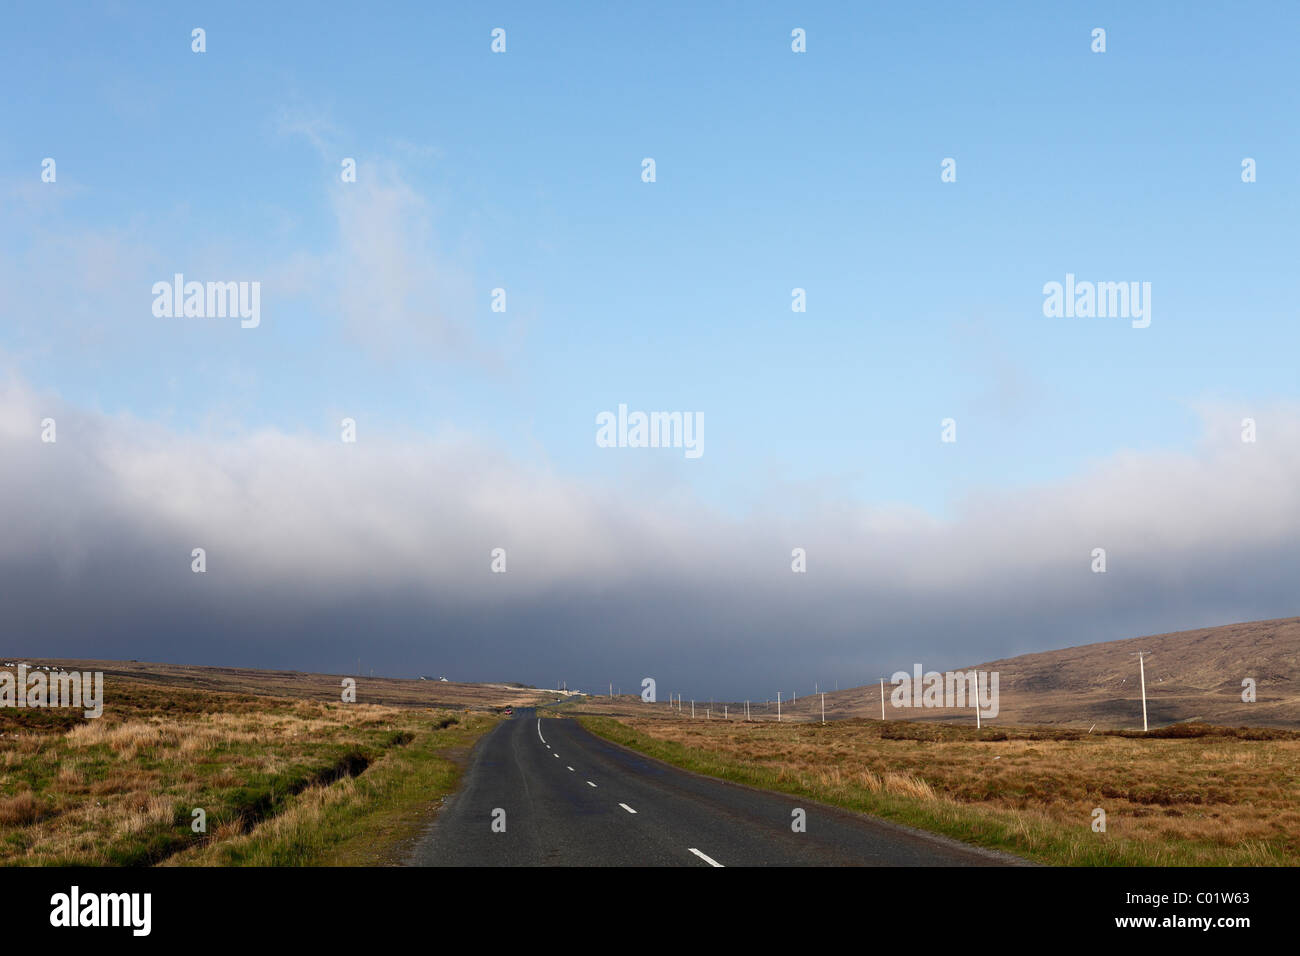 Country road with low clouds, Achill Island, County Mayo, Connacht province, Republic of Ireland, Europe - Stock Image